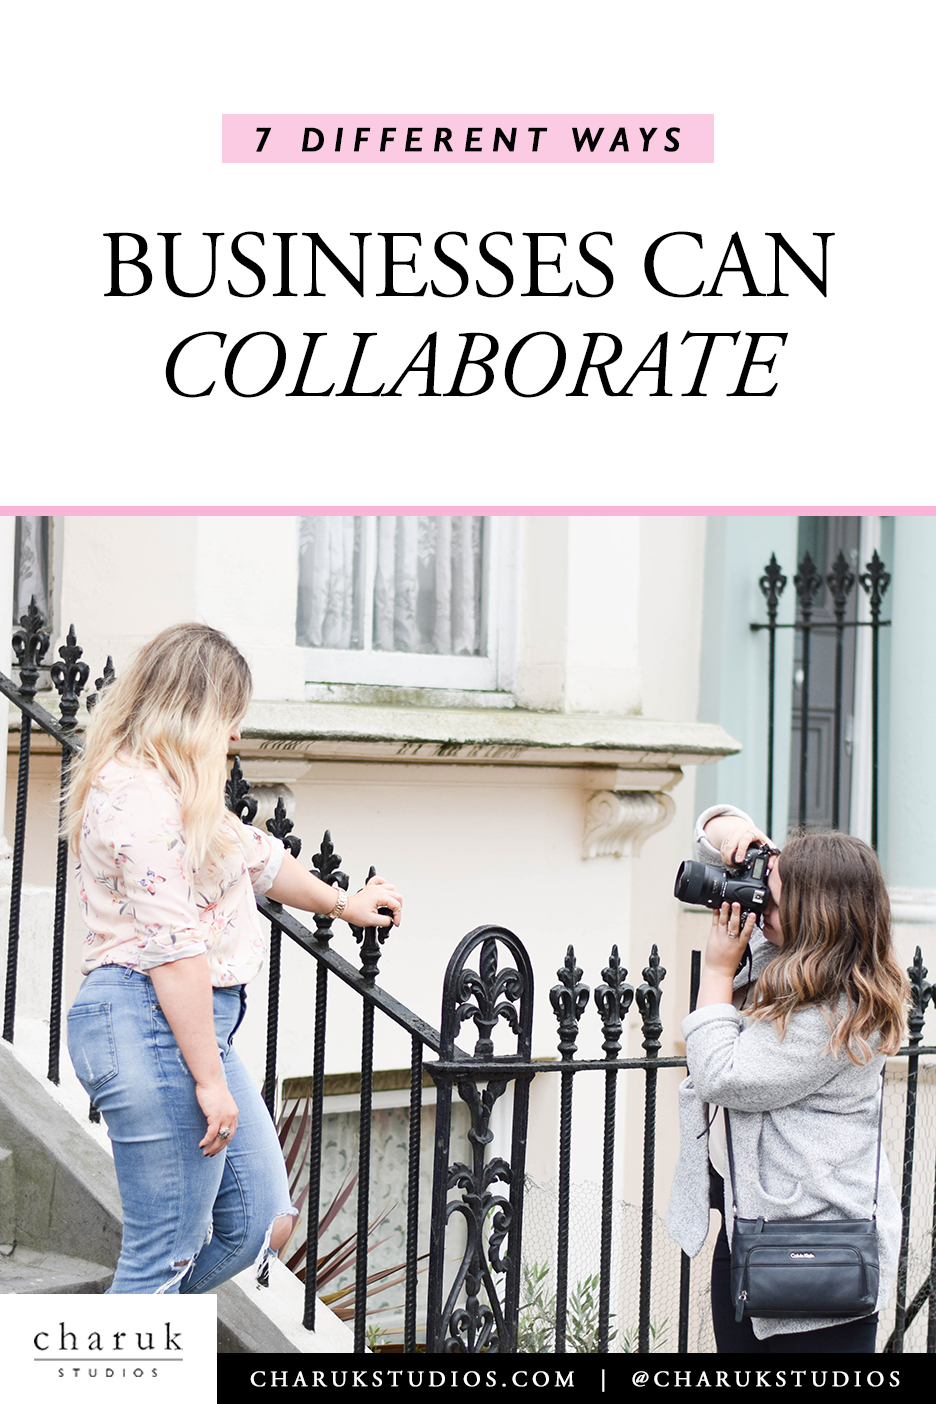 Businesses can collaborate.jpg